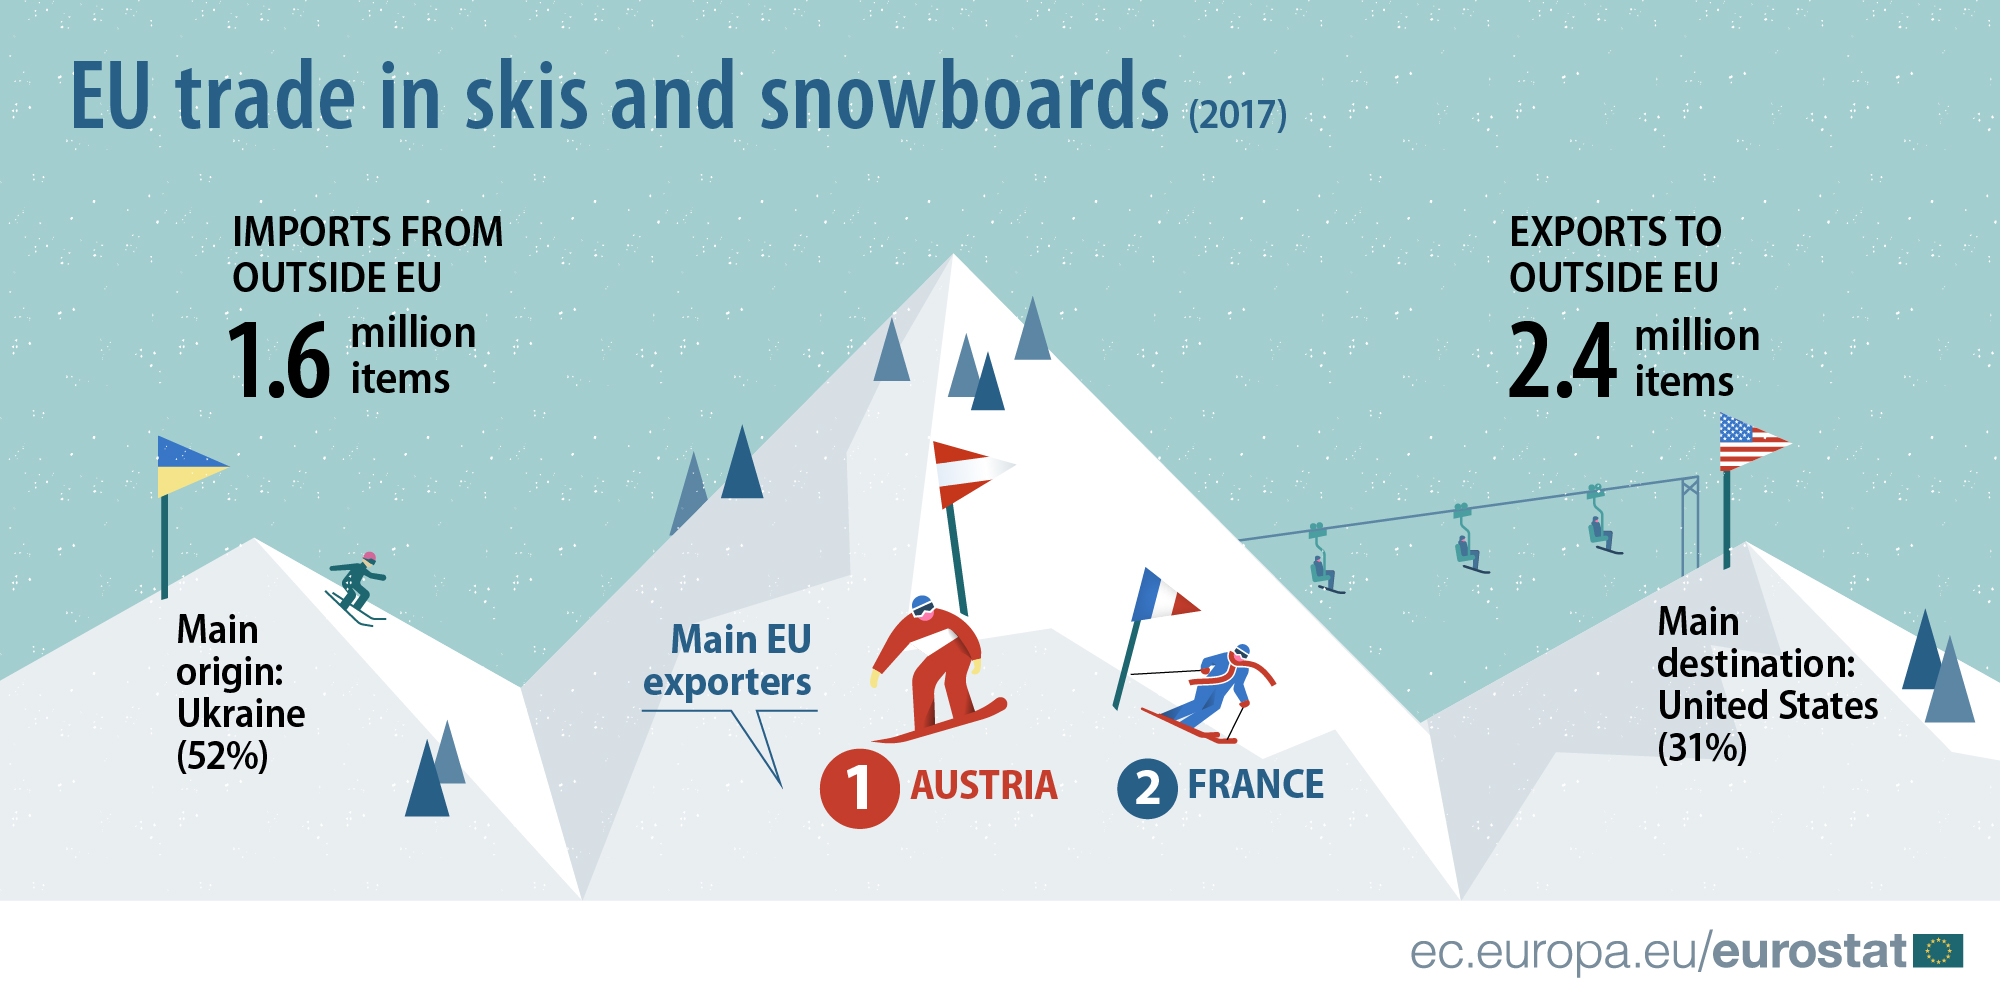 EU trade in skis and snowboards, 2017